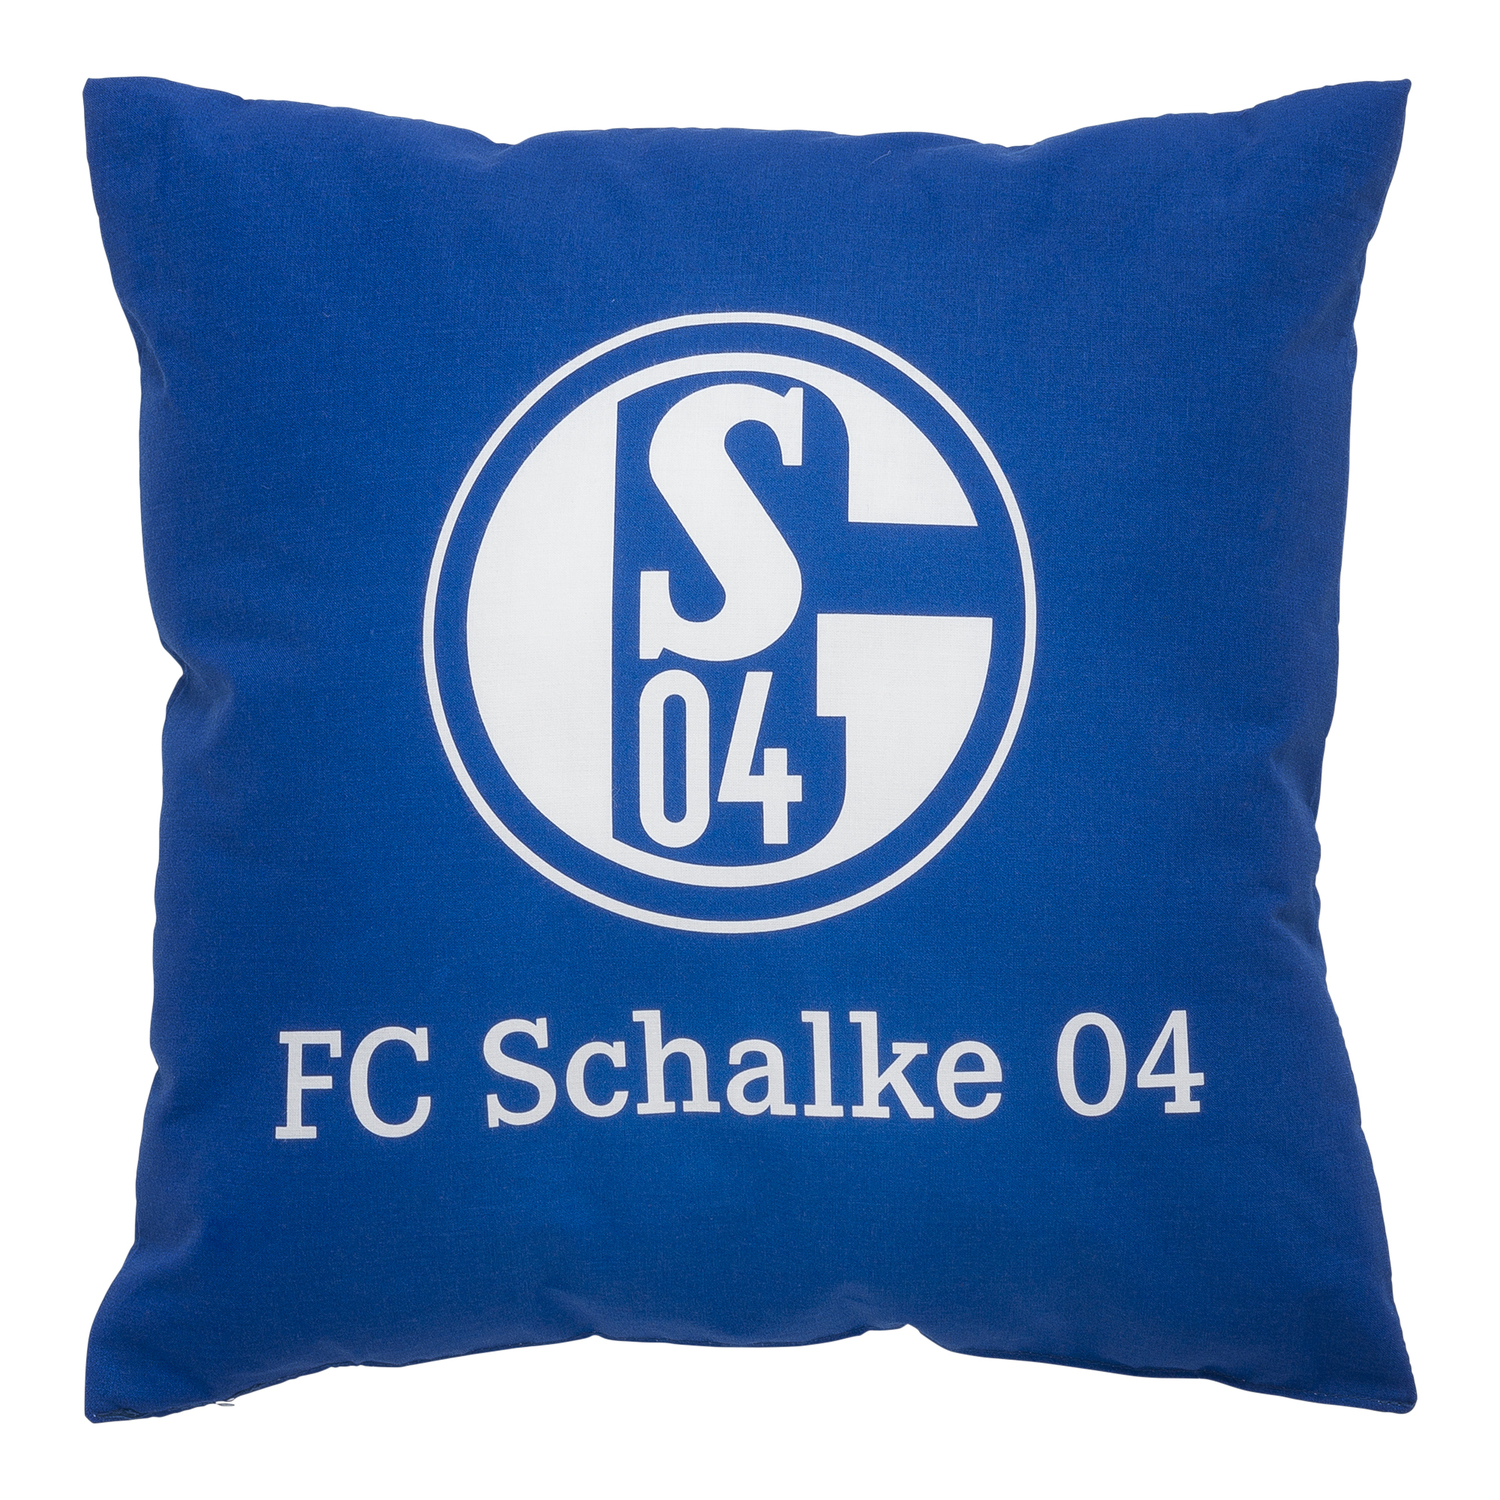 fc schalke 04 kissen signet. Black Bedroom Furniture Sets. Home Design Ideas